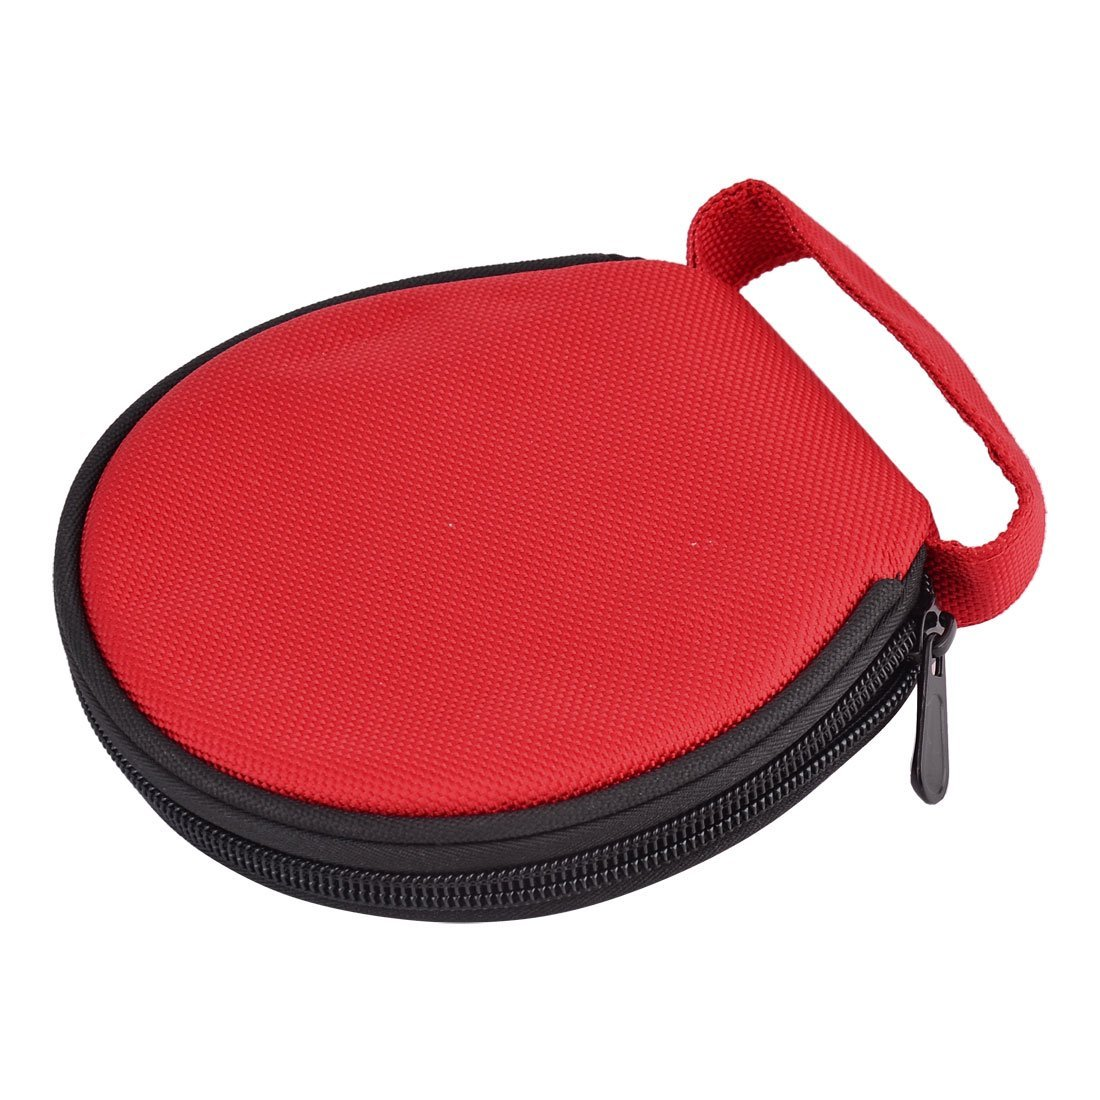 EbuyChX Nylon Home Car Hand Carry Zipper Storage Round Case CD Holder Bag 20 Discs Capacity Red